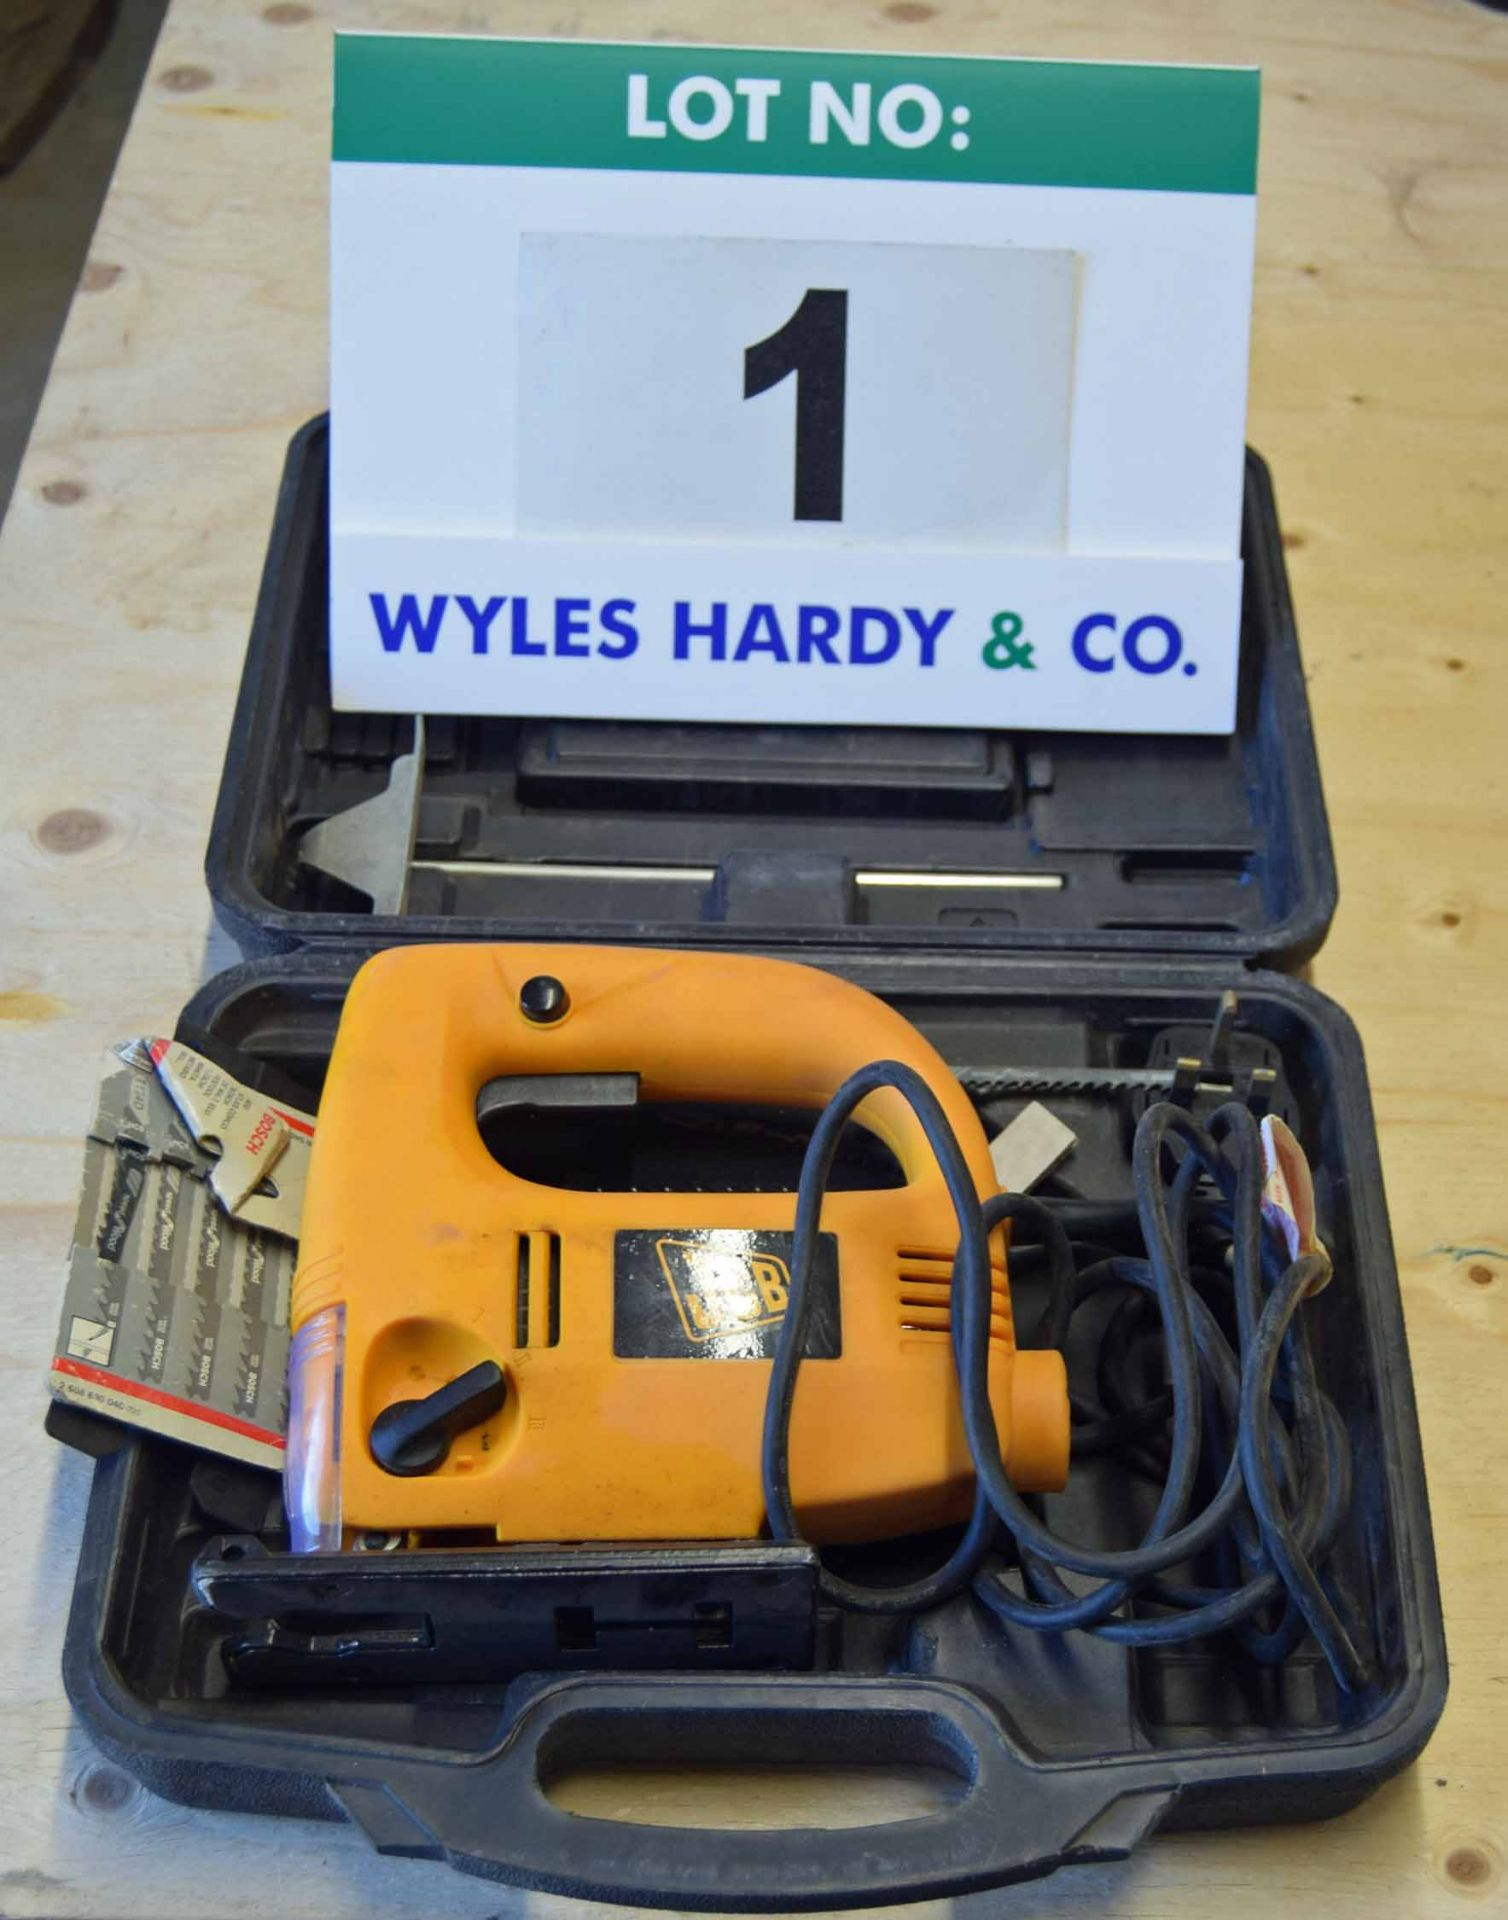 Lot 1 - A JCB 240V AC Variable Speed Jigsaw in Dedicated Plastic Carry/Storage Case